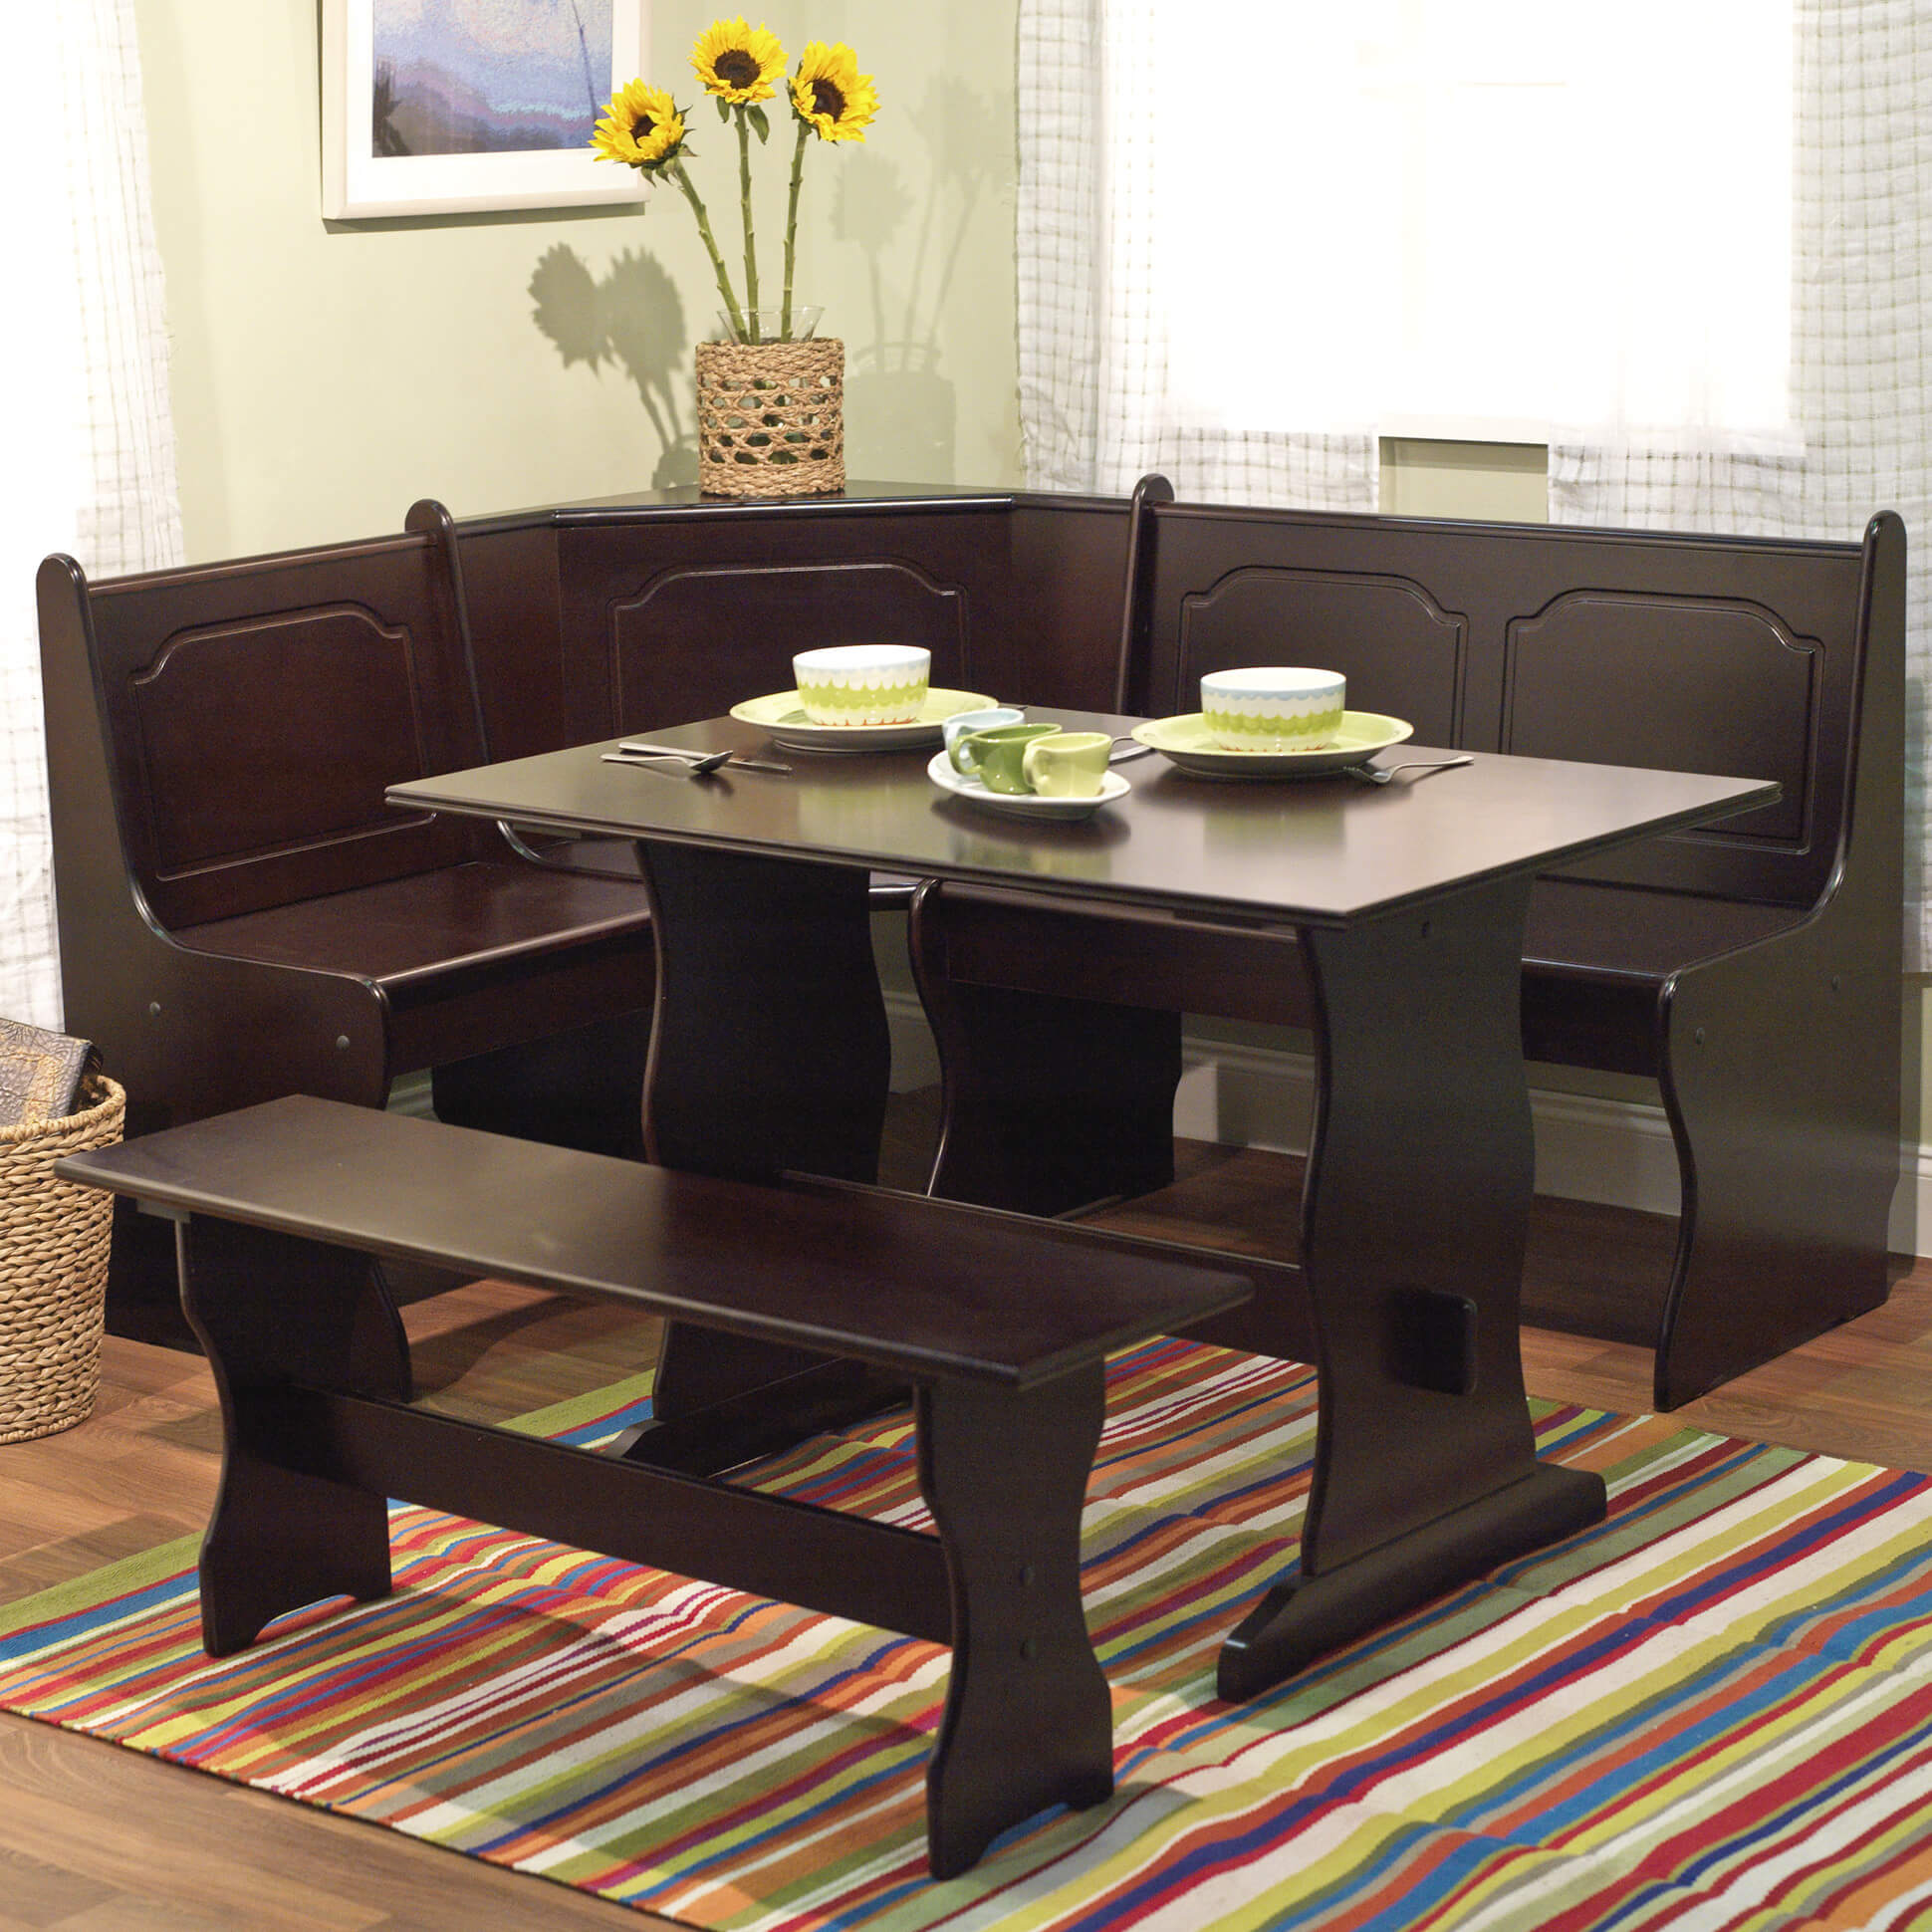 https://s3.amazonaws.com/homestratosphere/wp-content/uploads/2014/09/12way-dining-room-set-with-bench.jpg